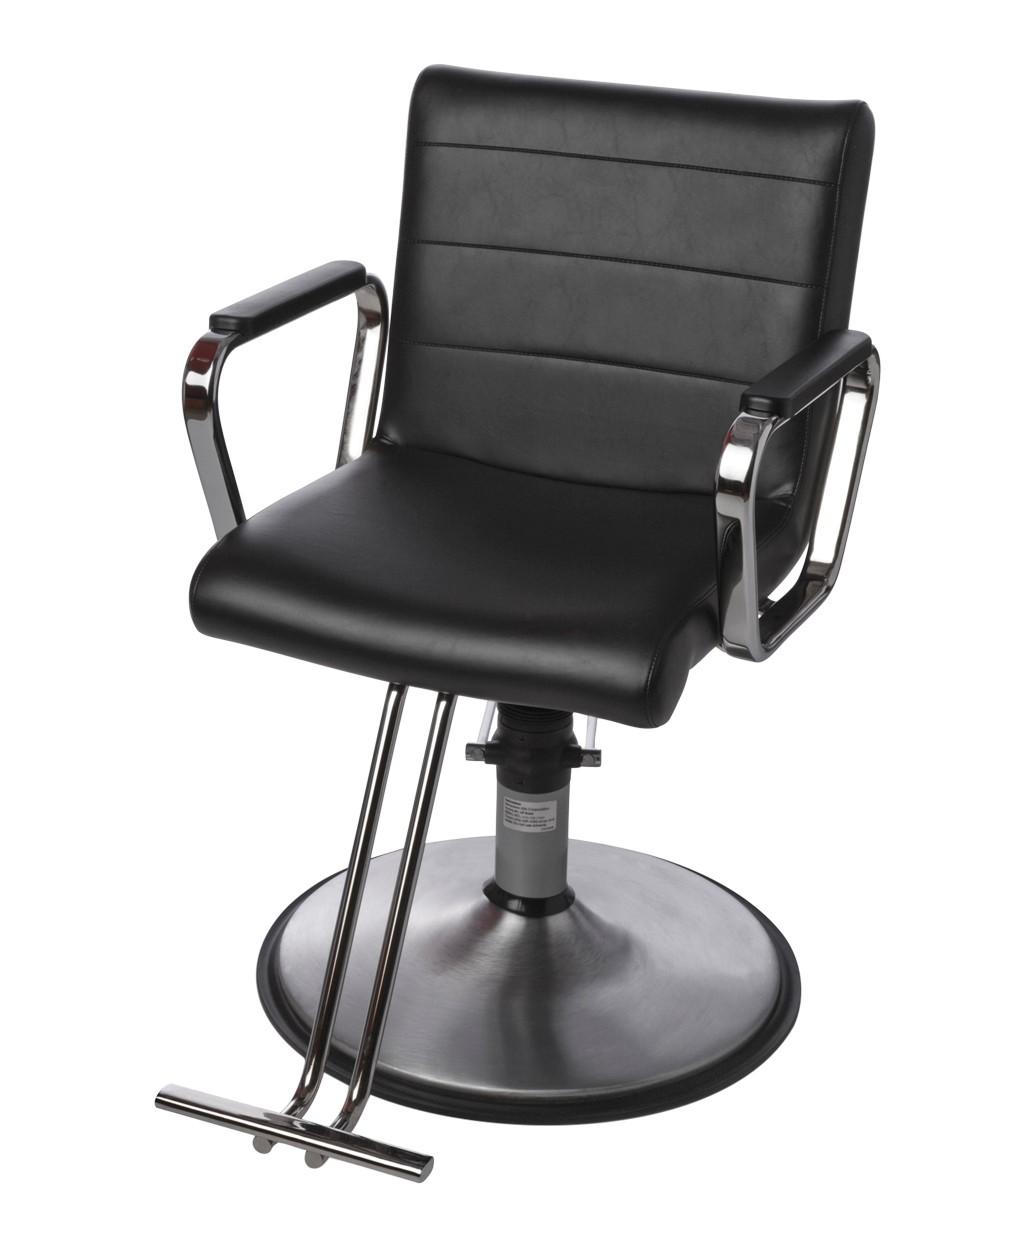 Belvedere NA12 Arrojo Styling Chair – Belvedere Styling Chairs